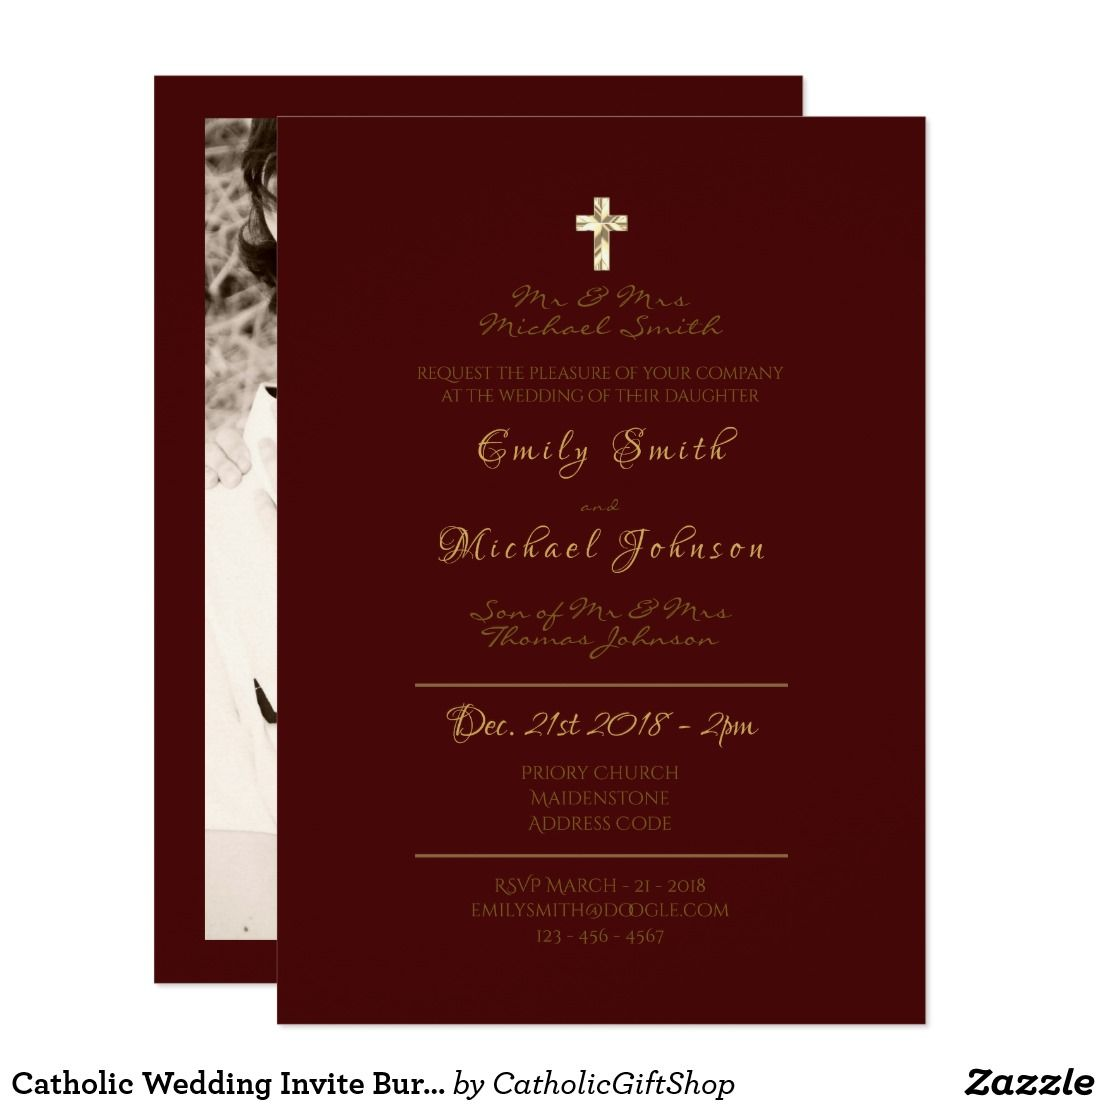 Catholic Wedding Invite Burgundy Gold Formal